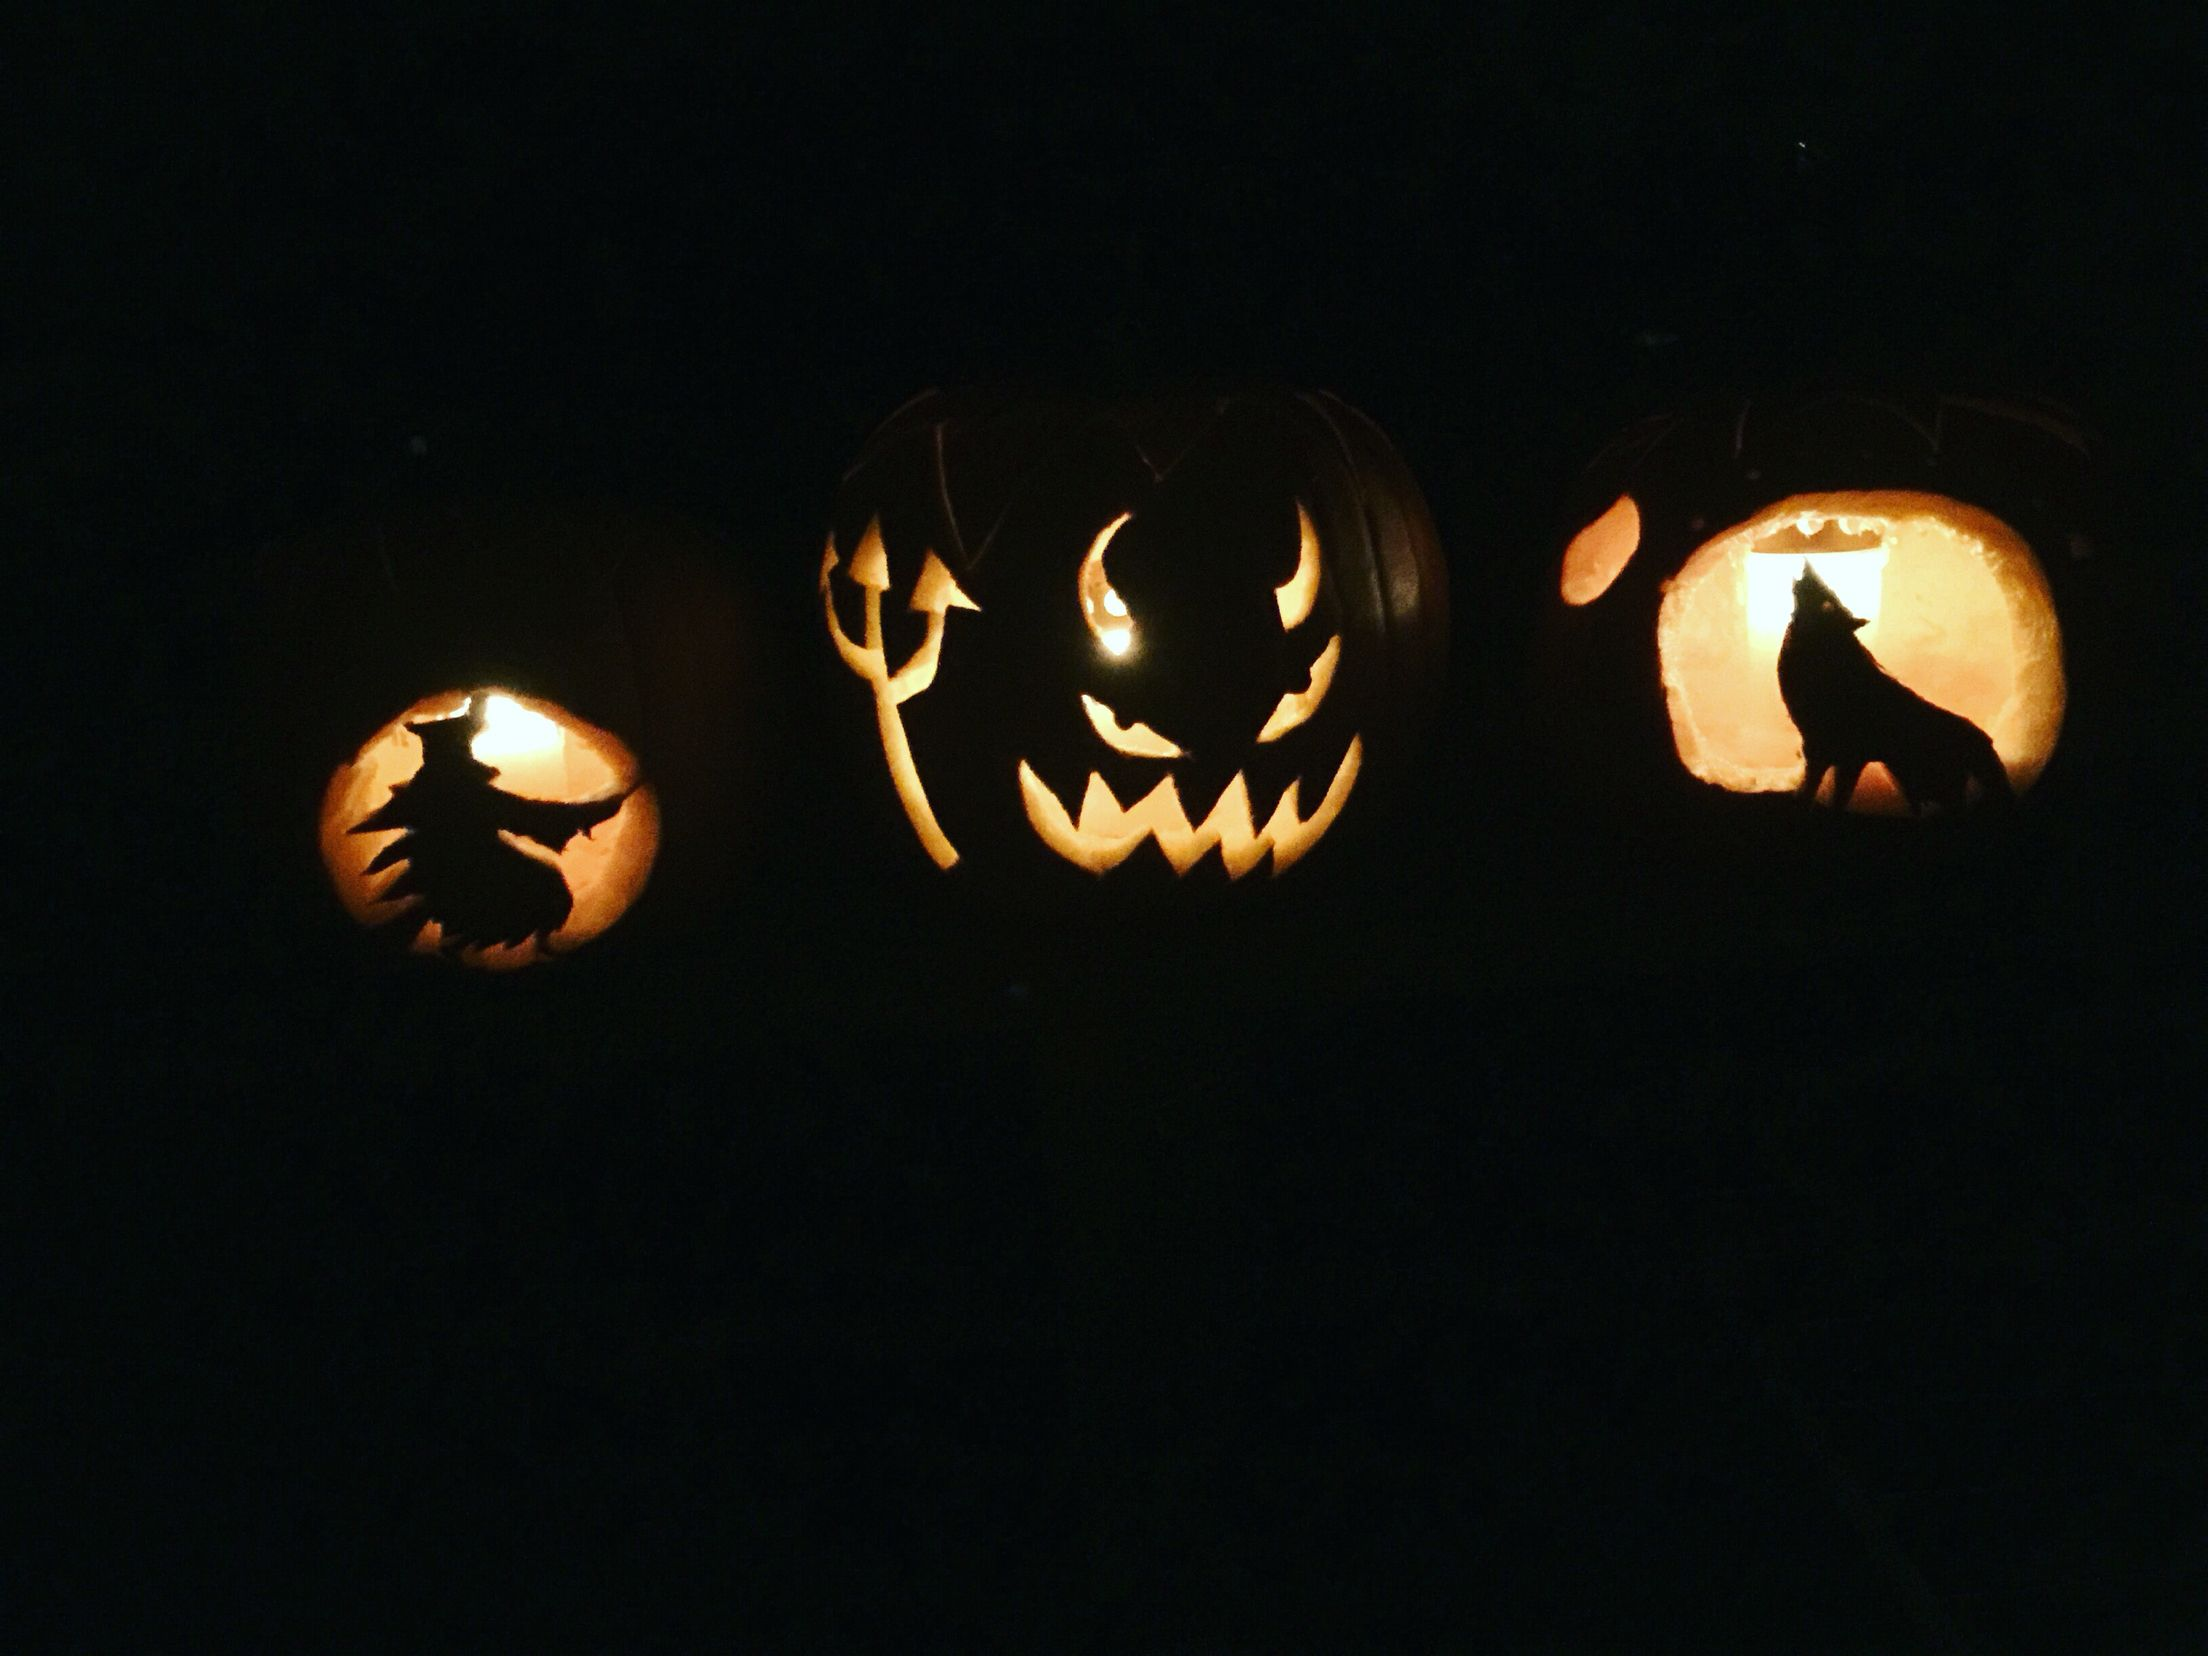 Pumpkincarvings anno 2015 /valuminesnah